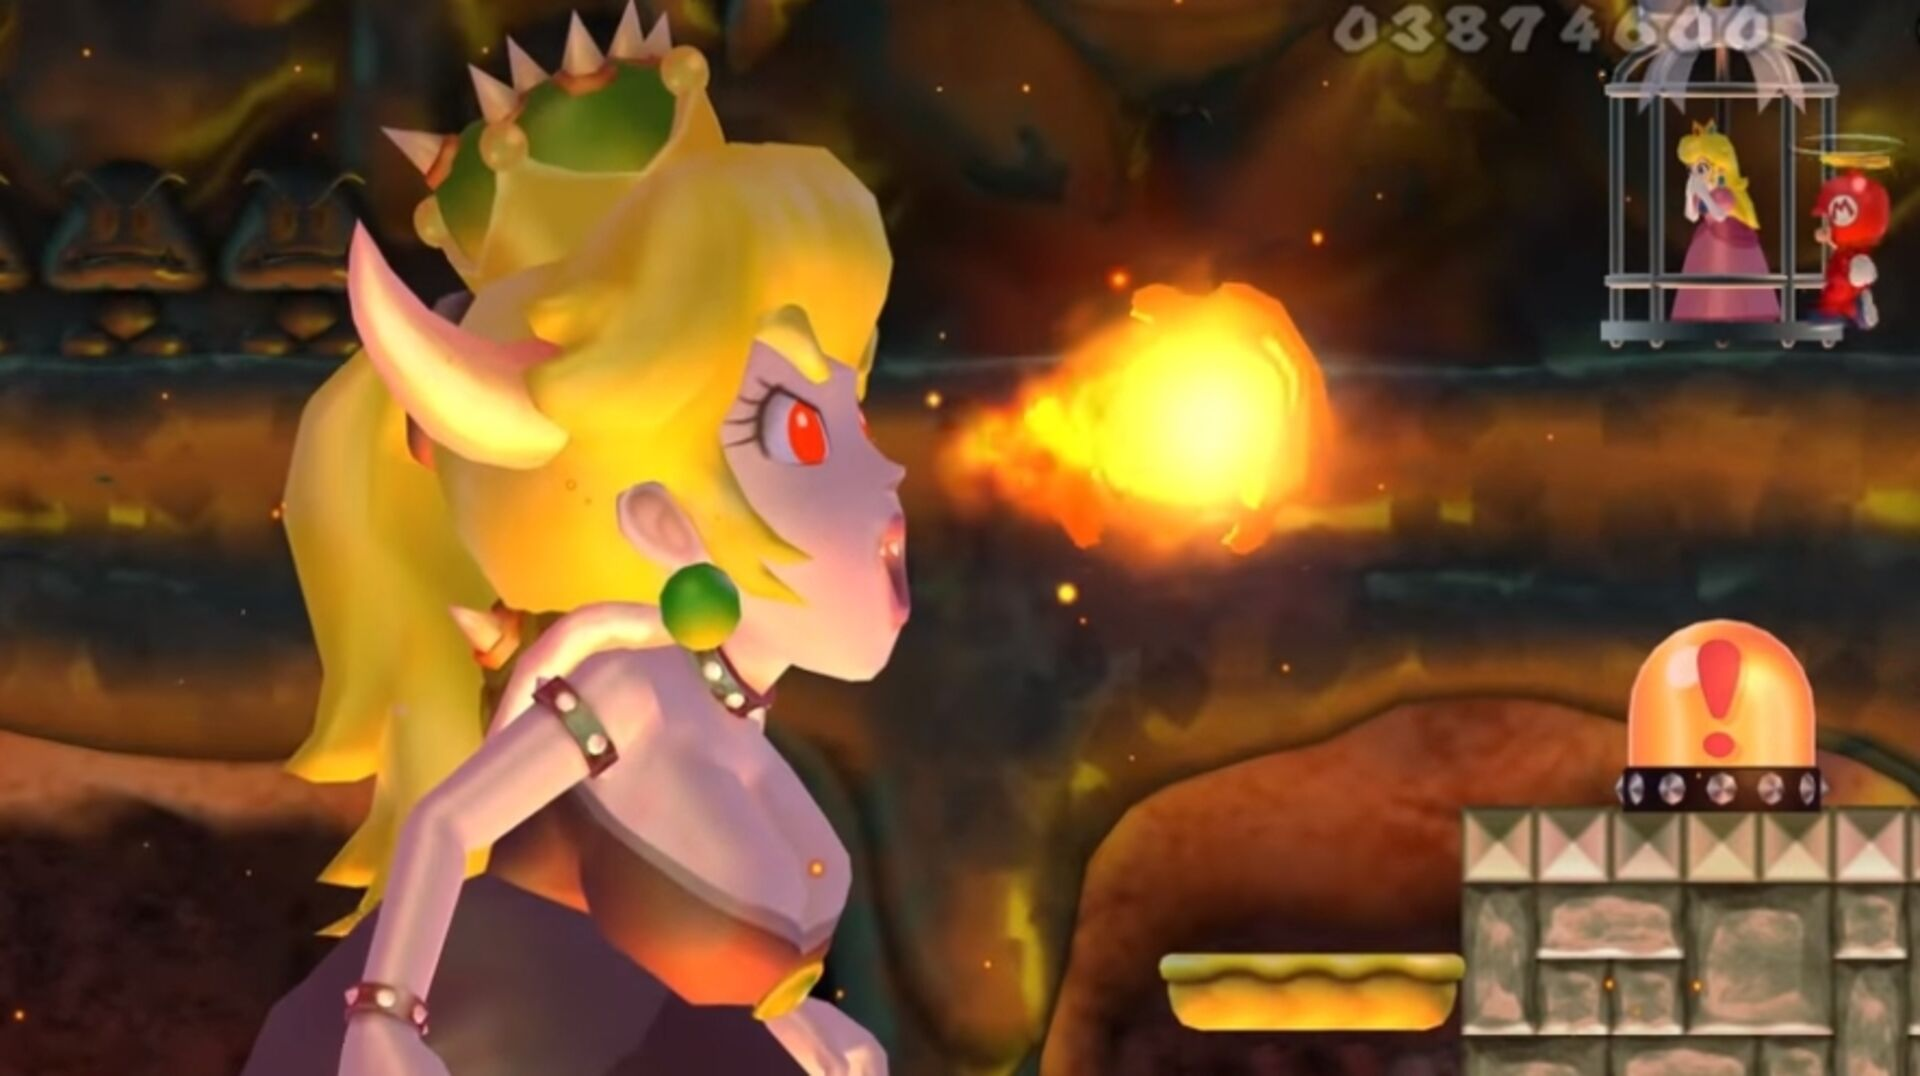 Bowsette game mods are getting out of hand • Eurogamer net